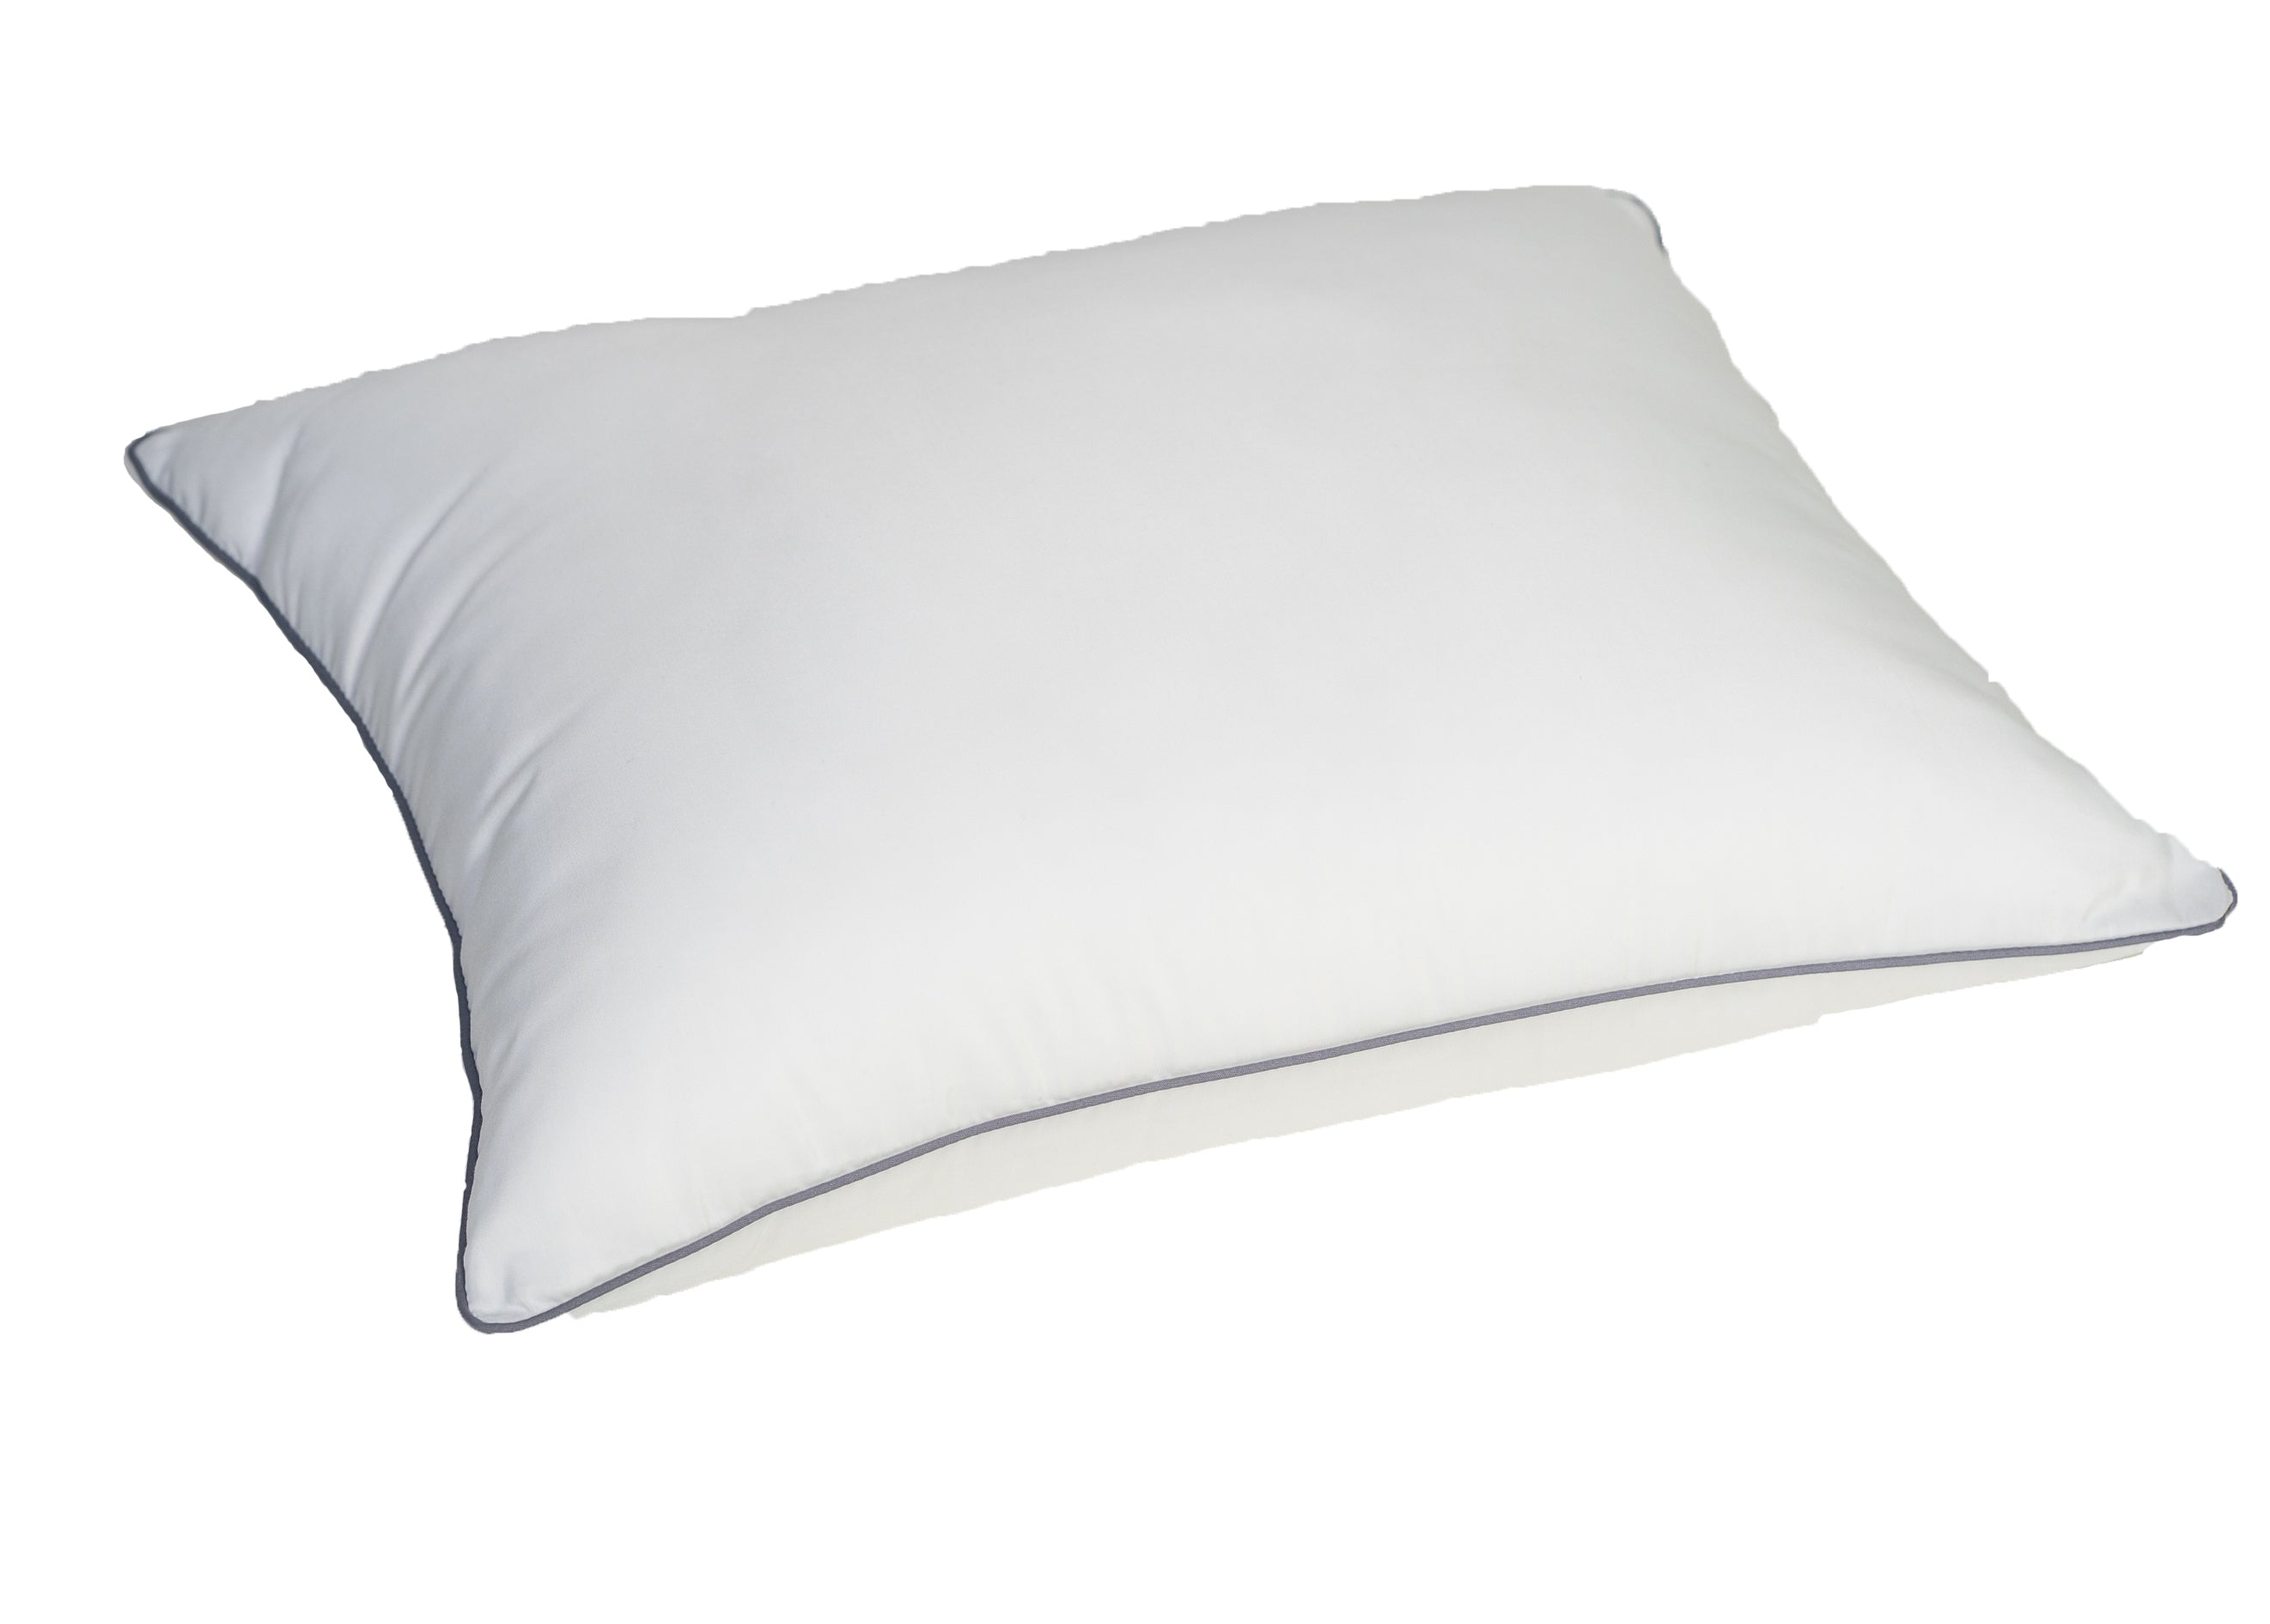 No Problem Hotel Luxury Pillow